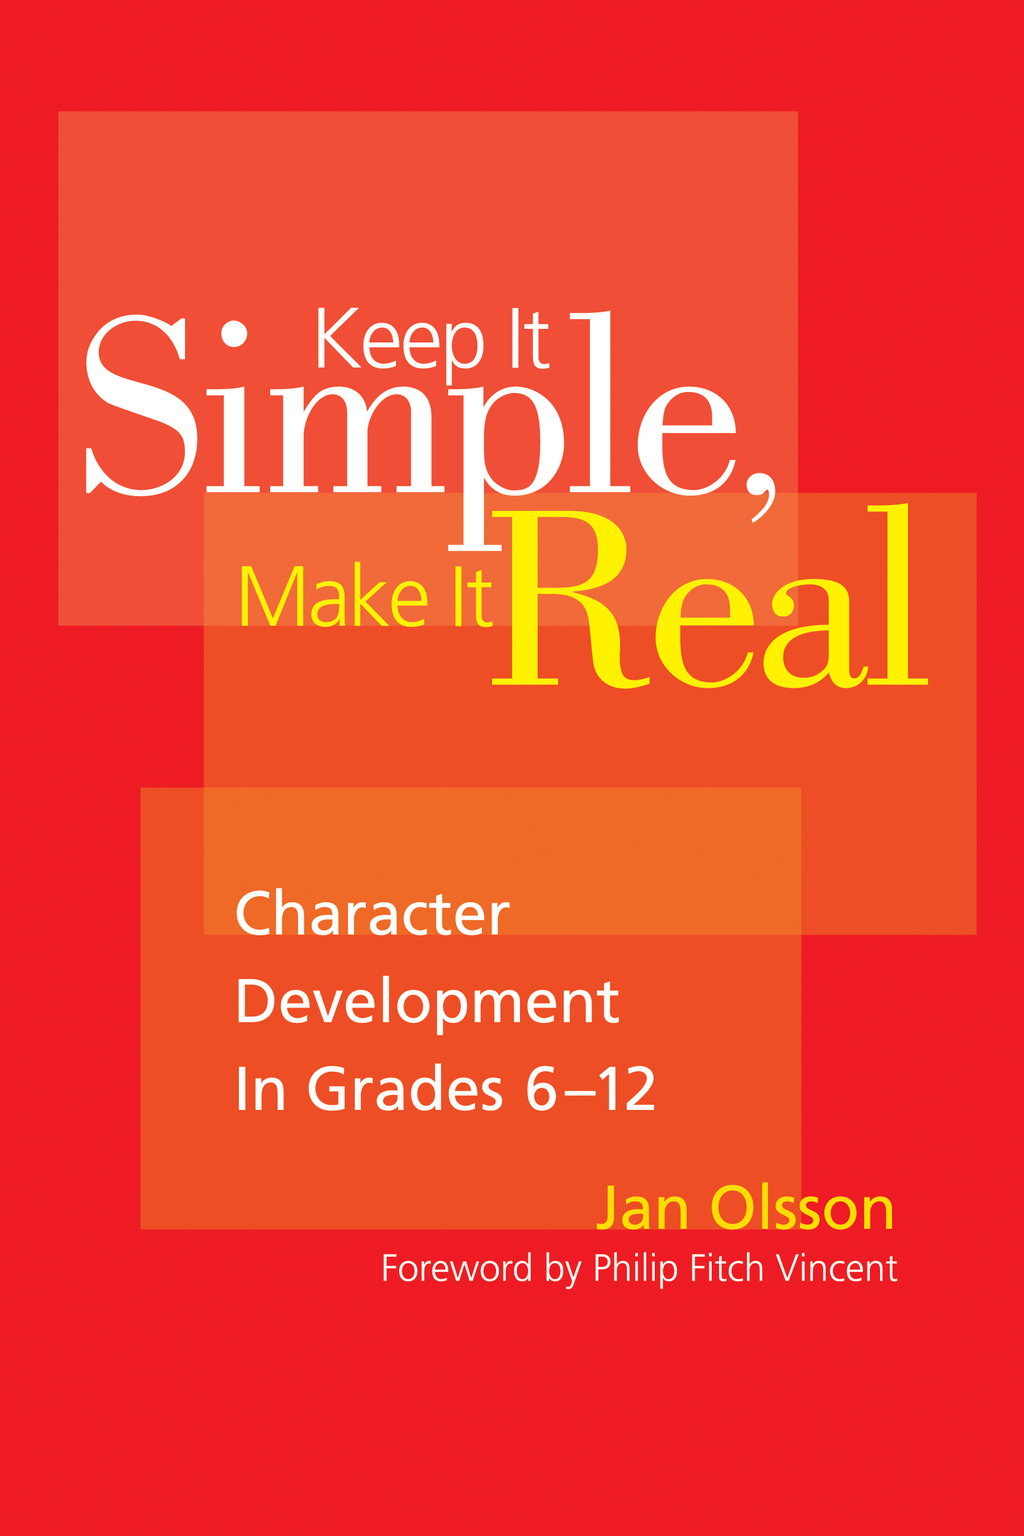 Keep It Simple,  Make It Real Character Development in Grades 6-12